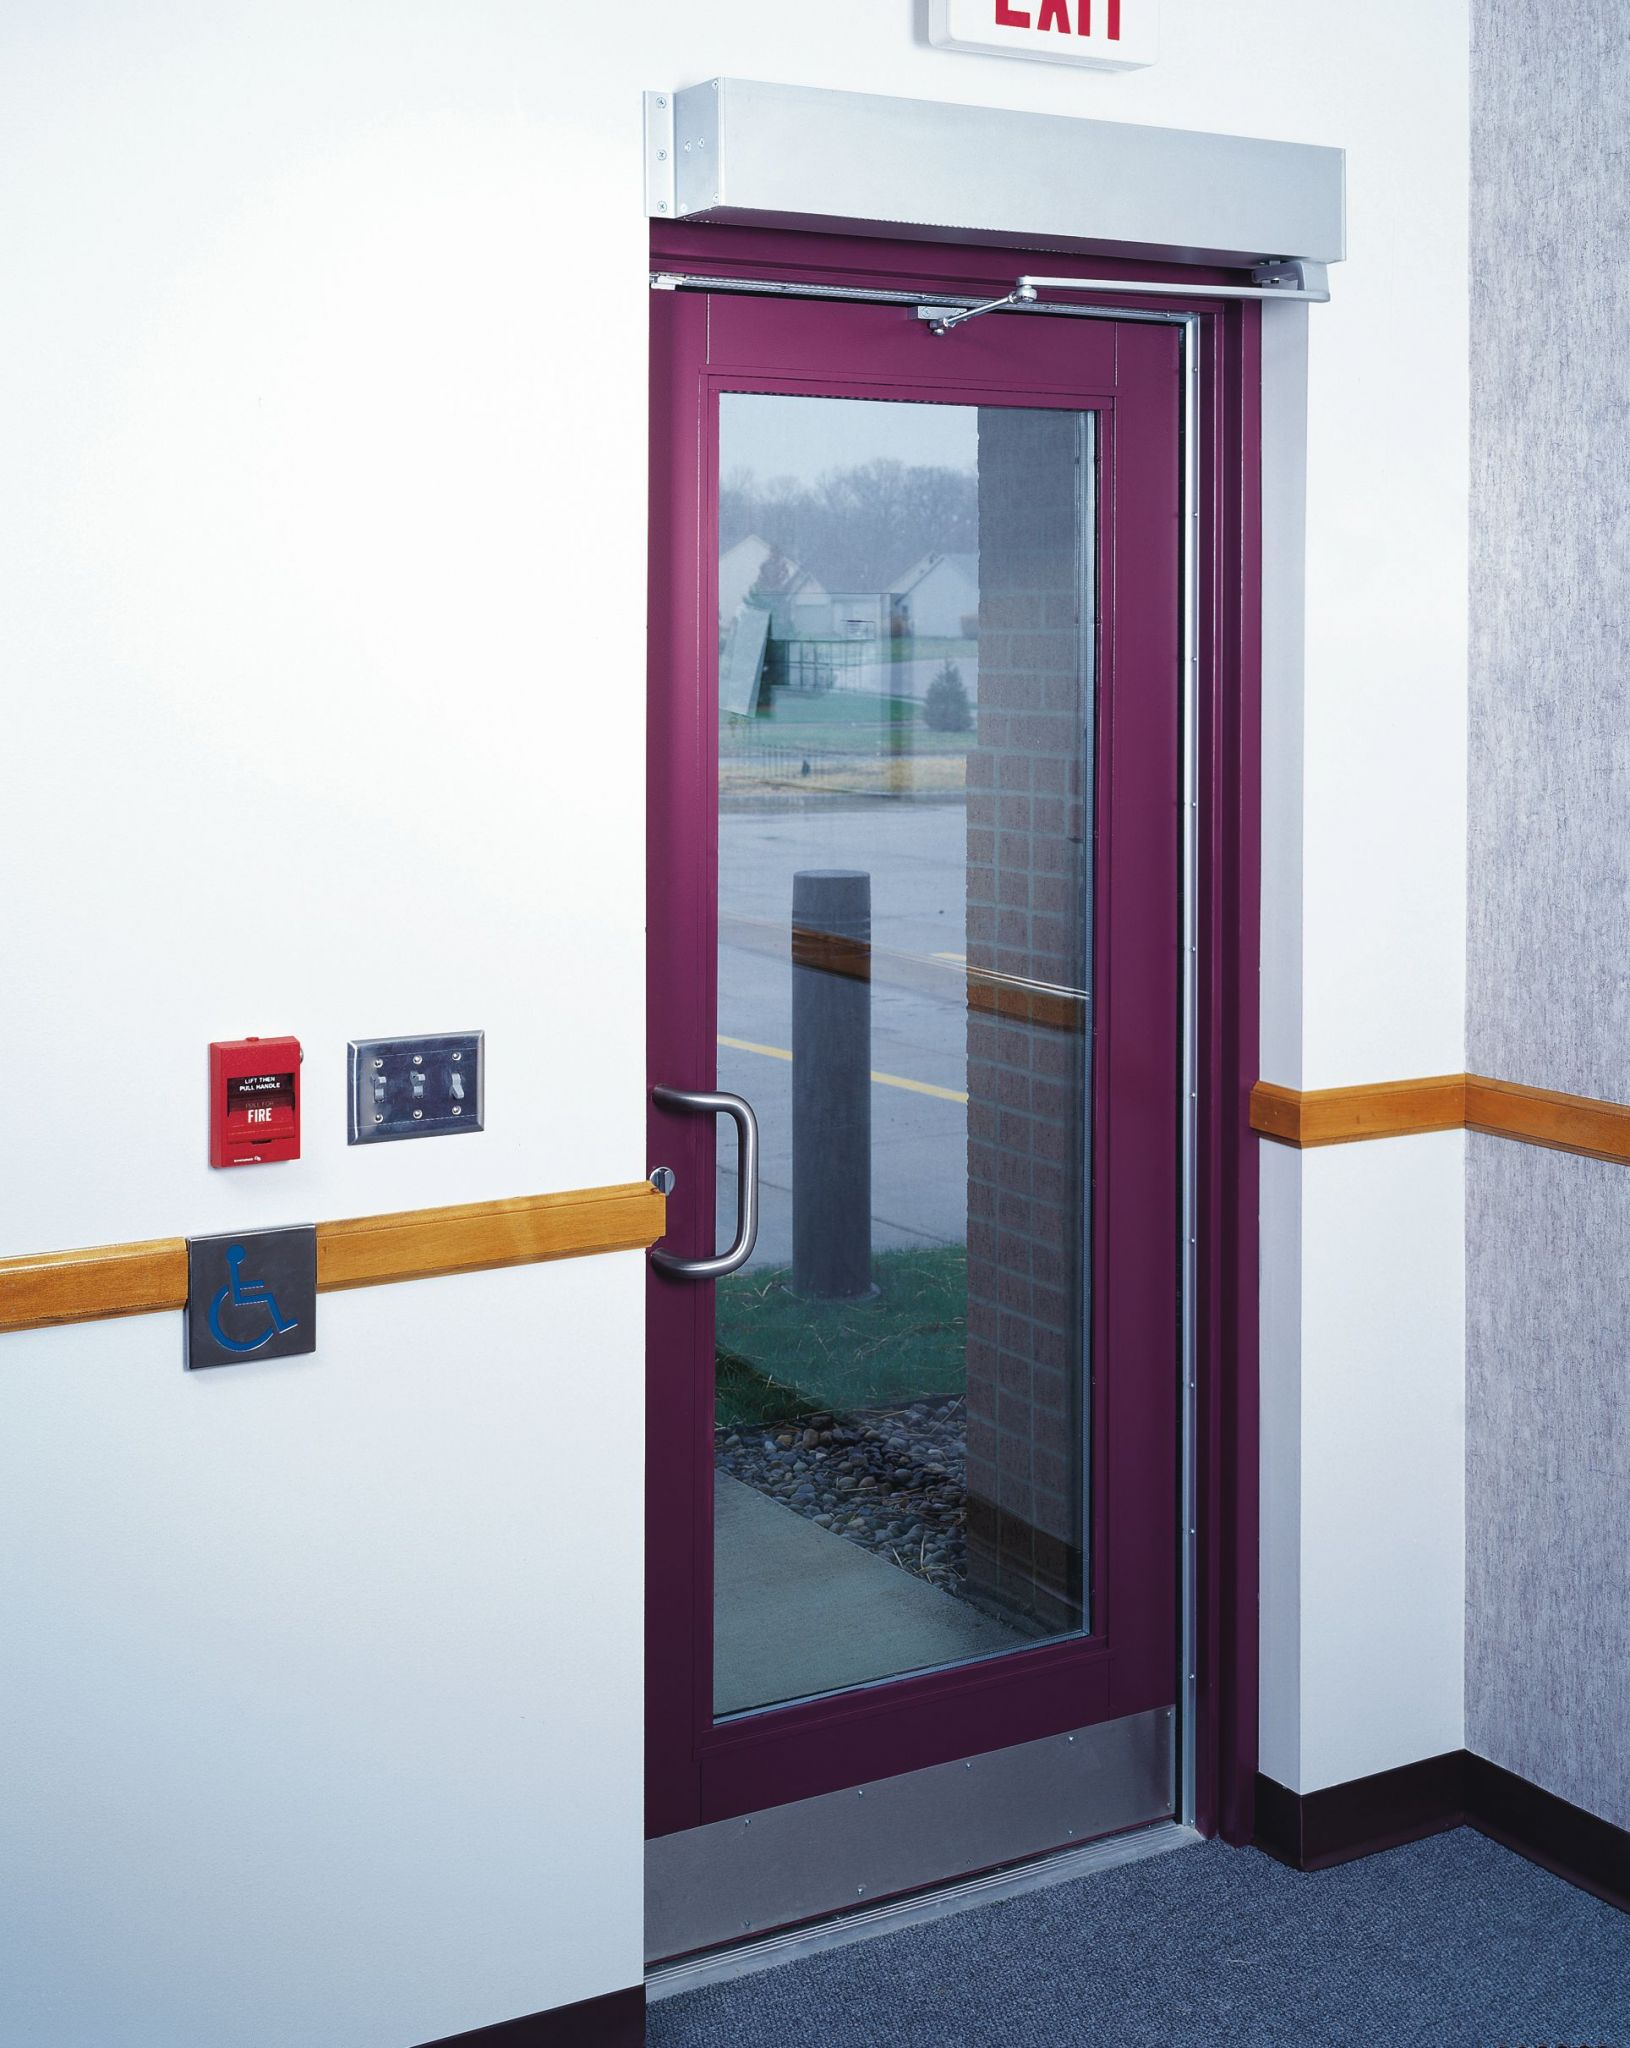 A low-energy automatic operator must be actuated by a knowing act (e.g. this wall-mounted push button) or must comply with the requirements of a Builders ... : ada doors - pezcame.com